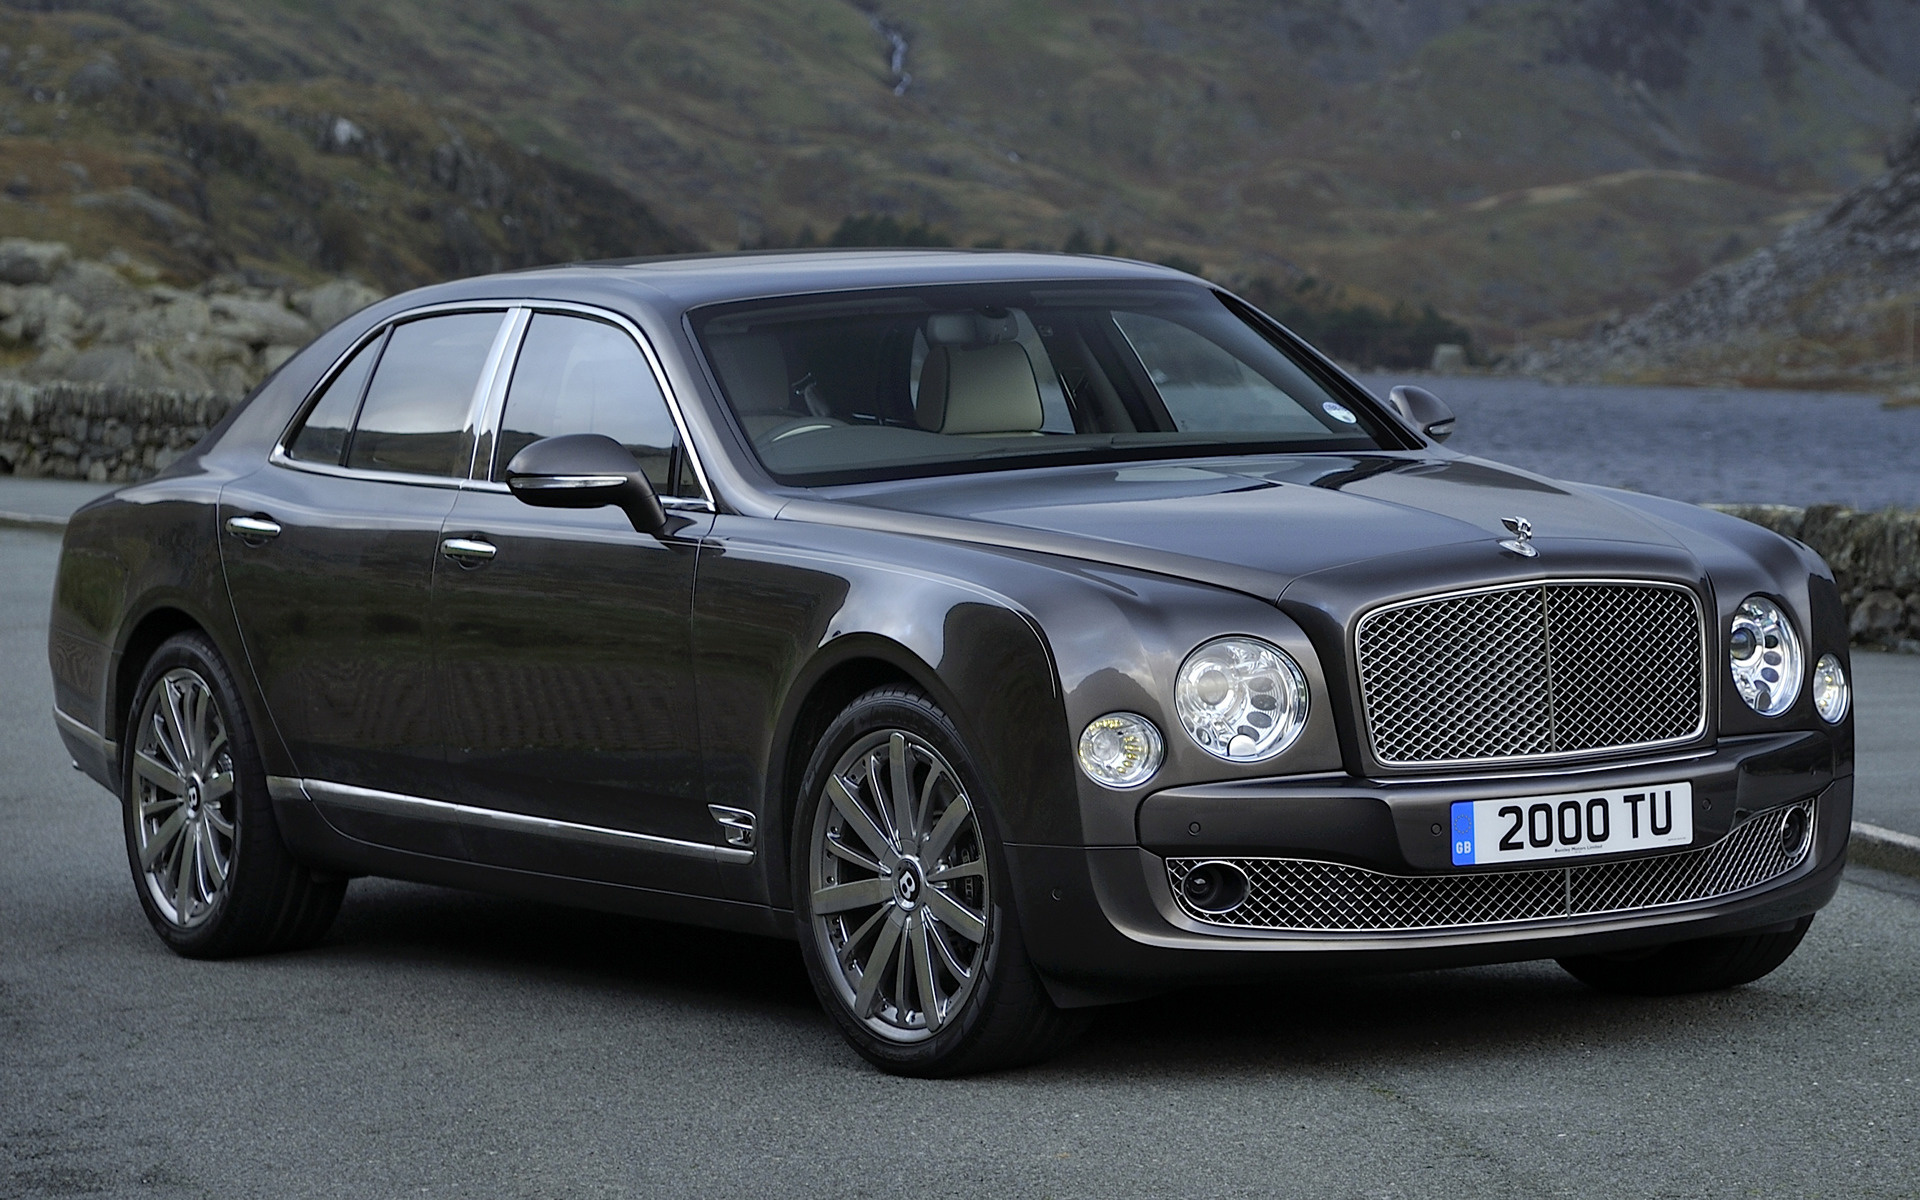 Bentley Mulsanne The Ultimate Grand Tourer (2013) UK Wallpapers and ...